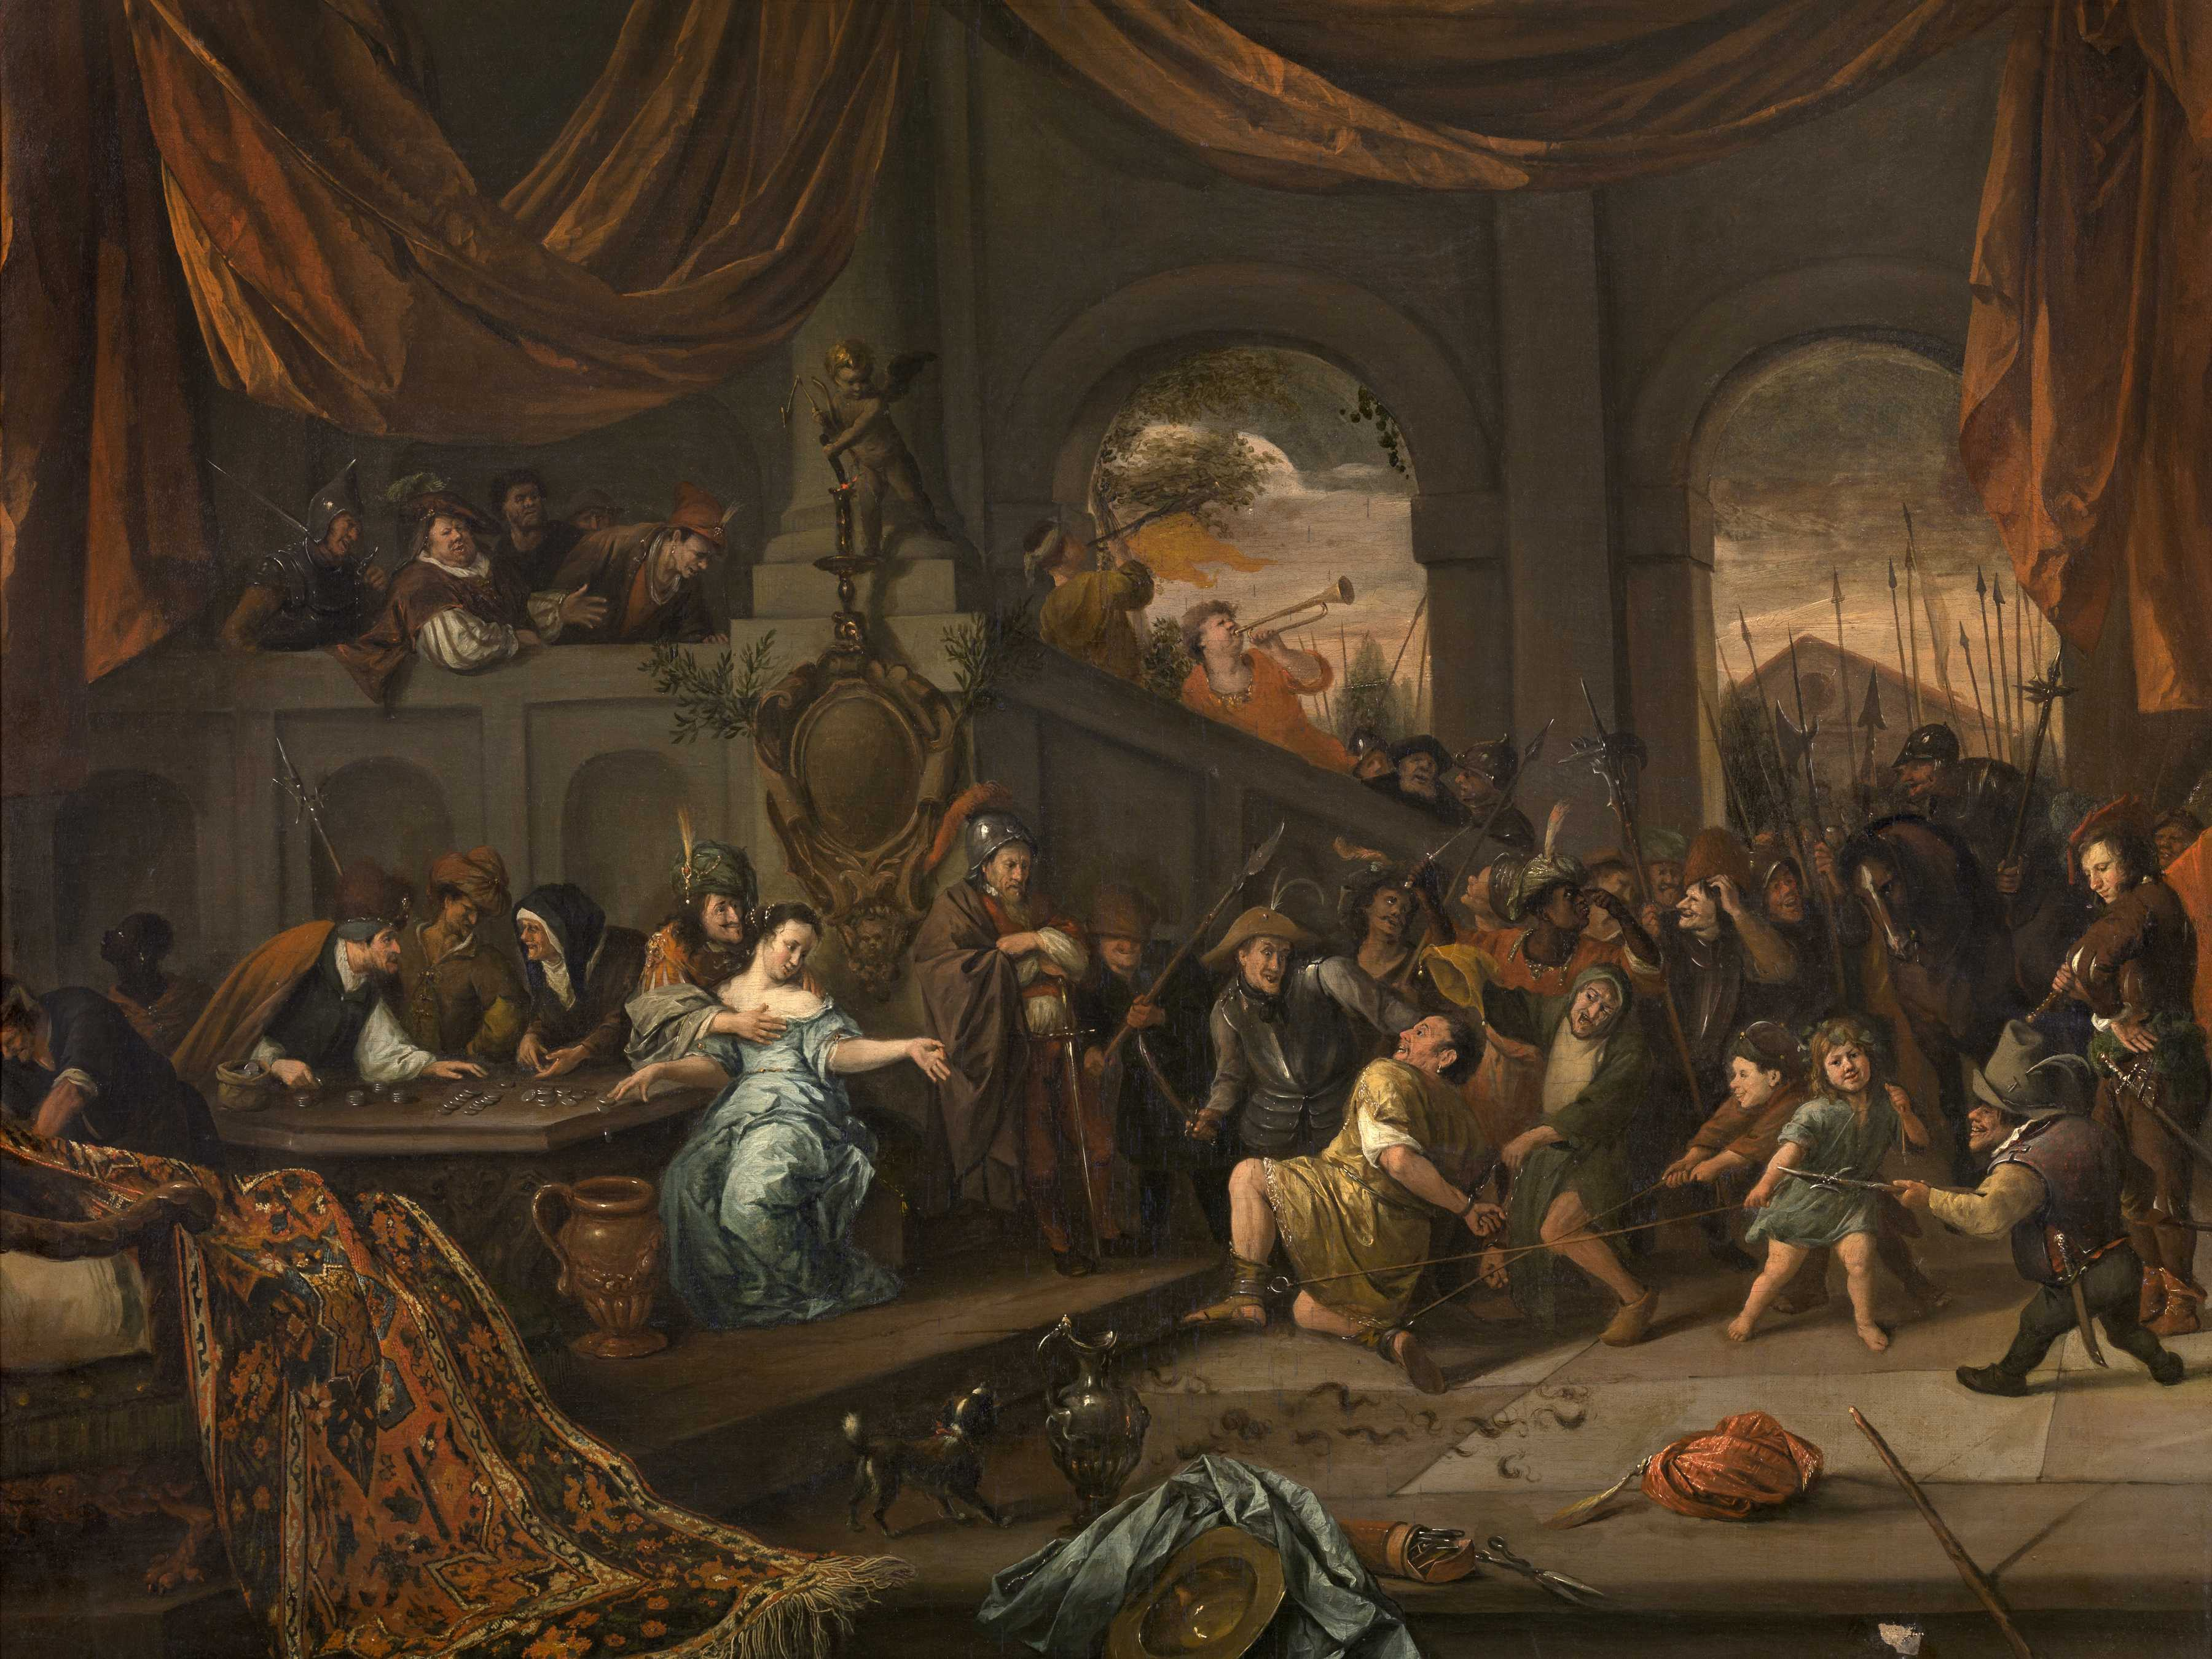 Museum: Painting Is A Genuine Jan Steen Artwork, Not A Copy